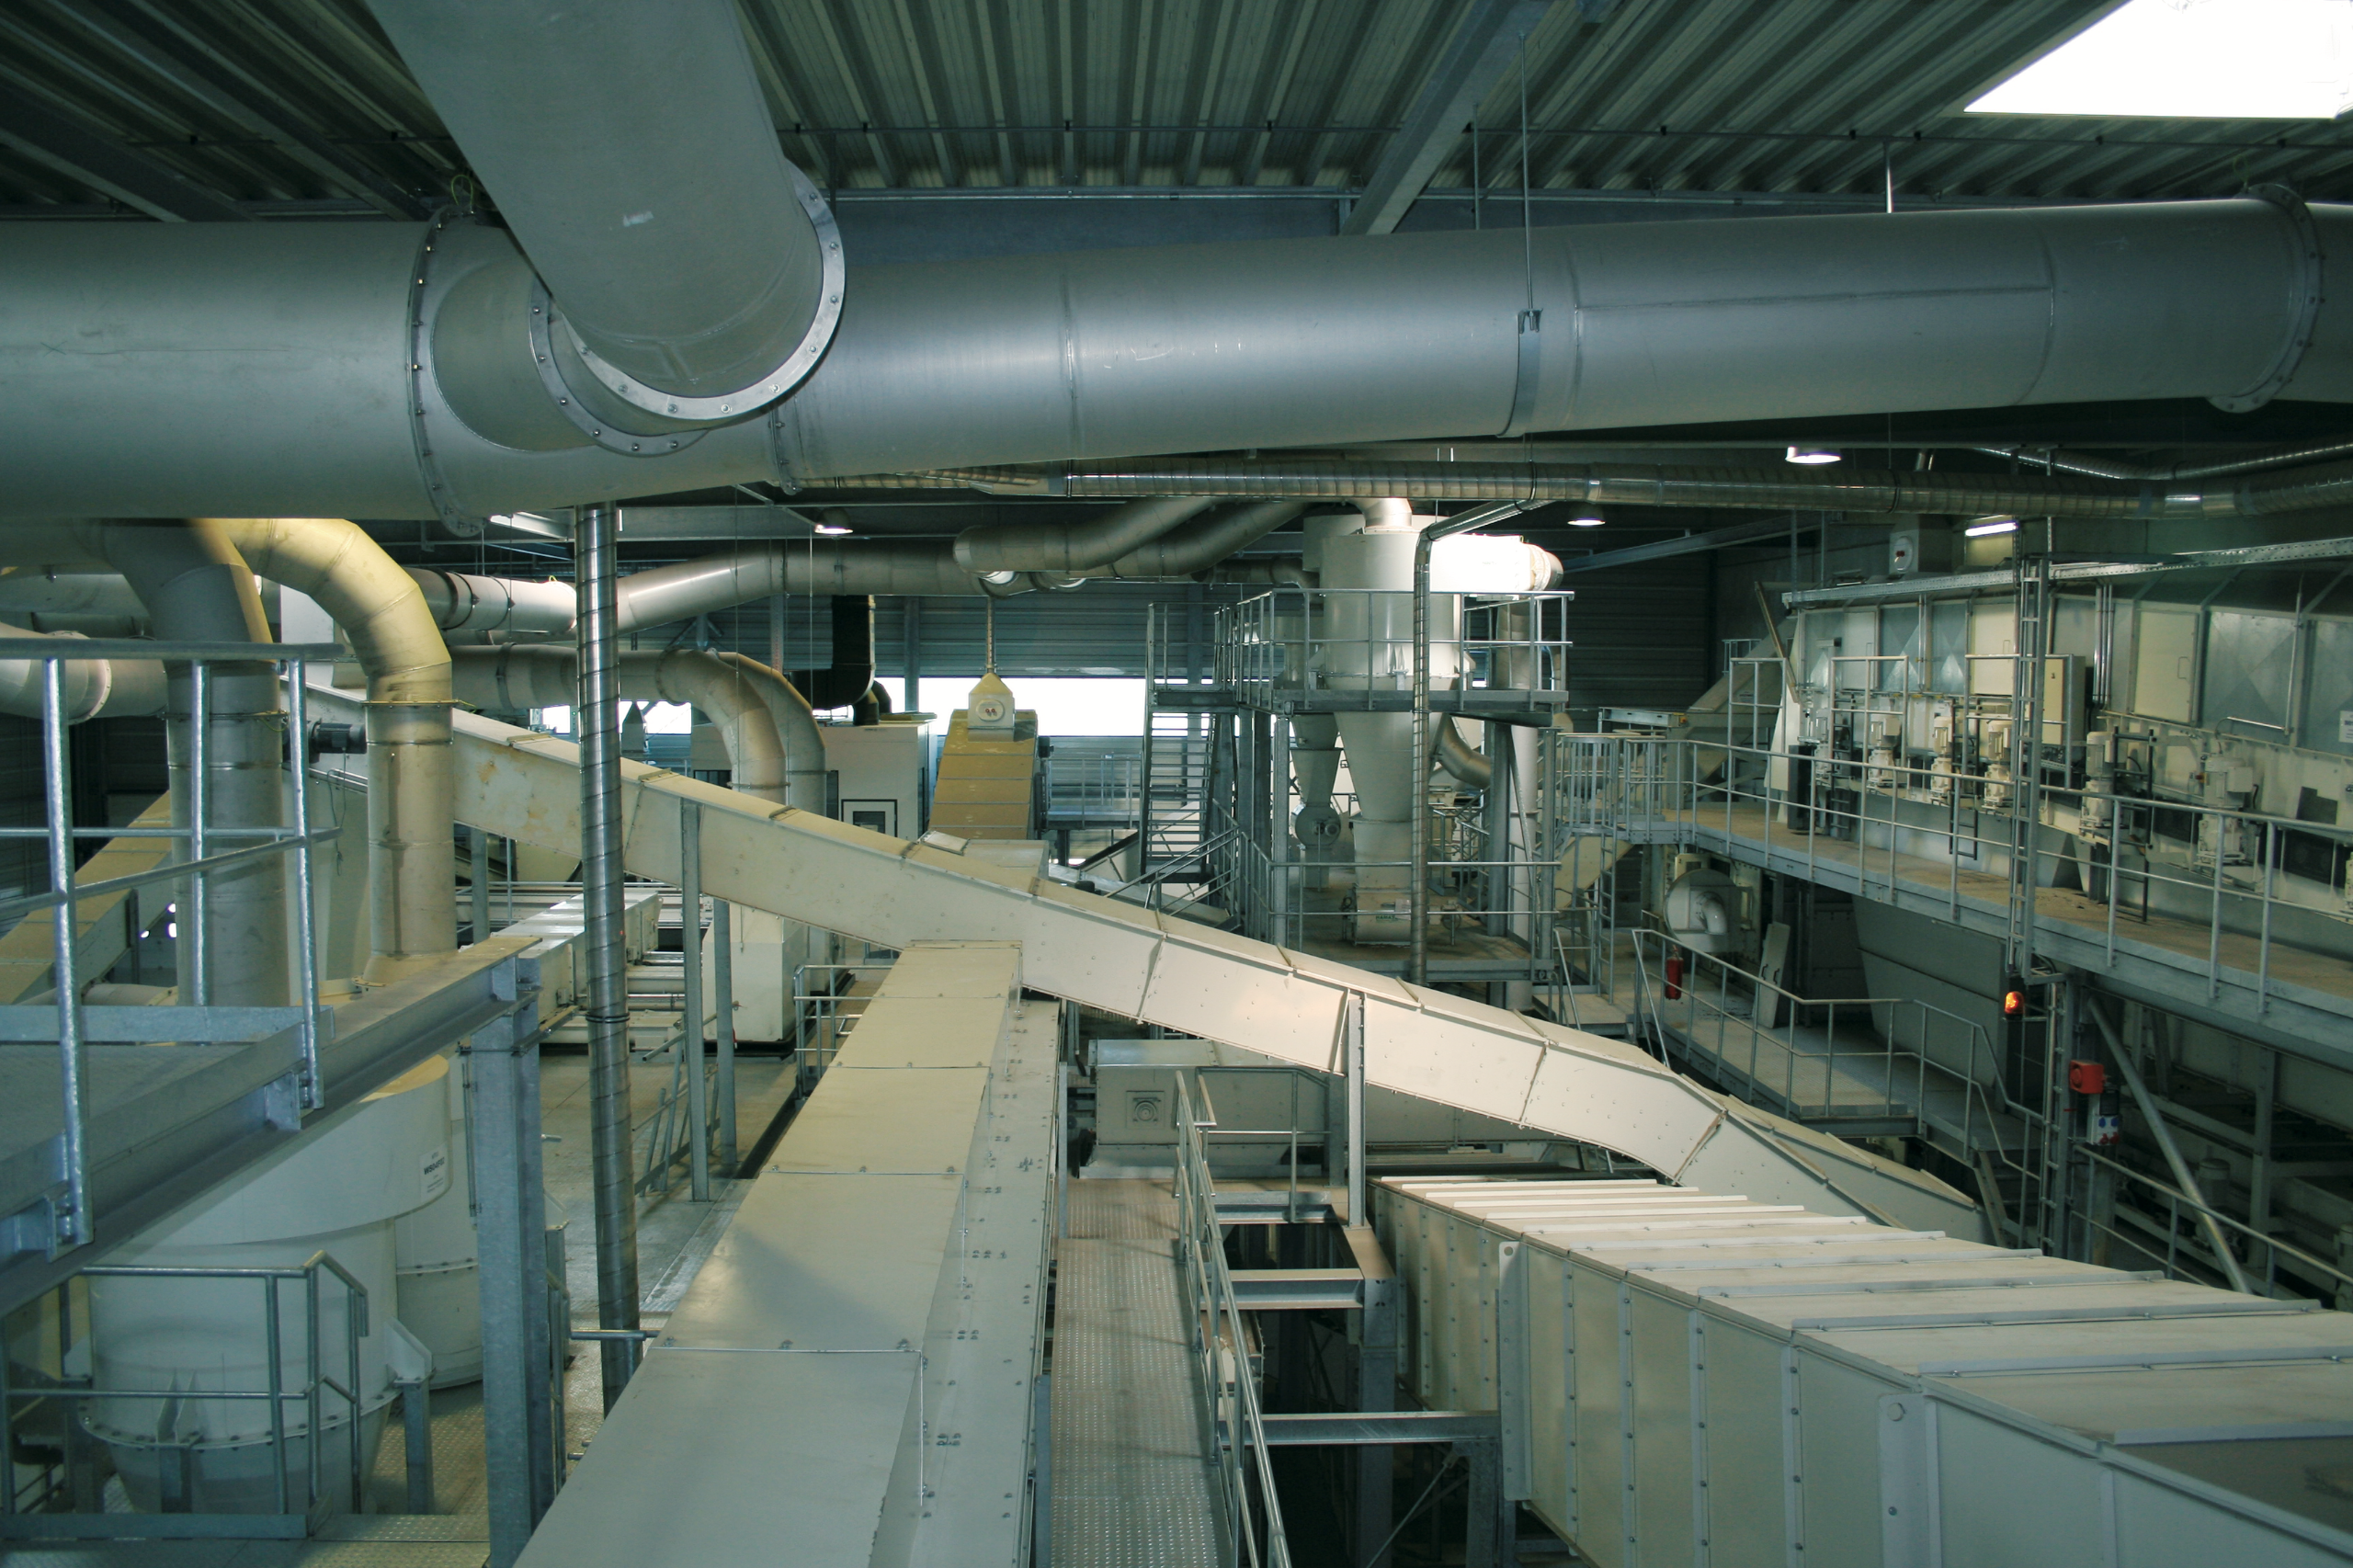 Interior view of the plant